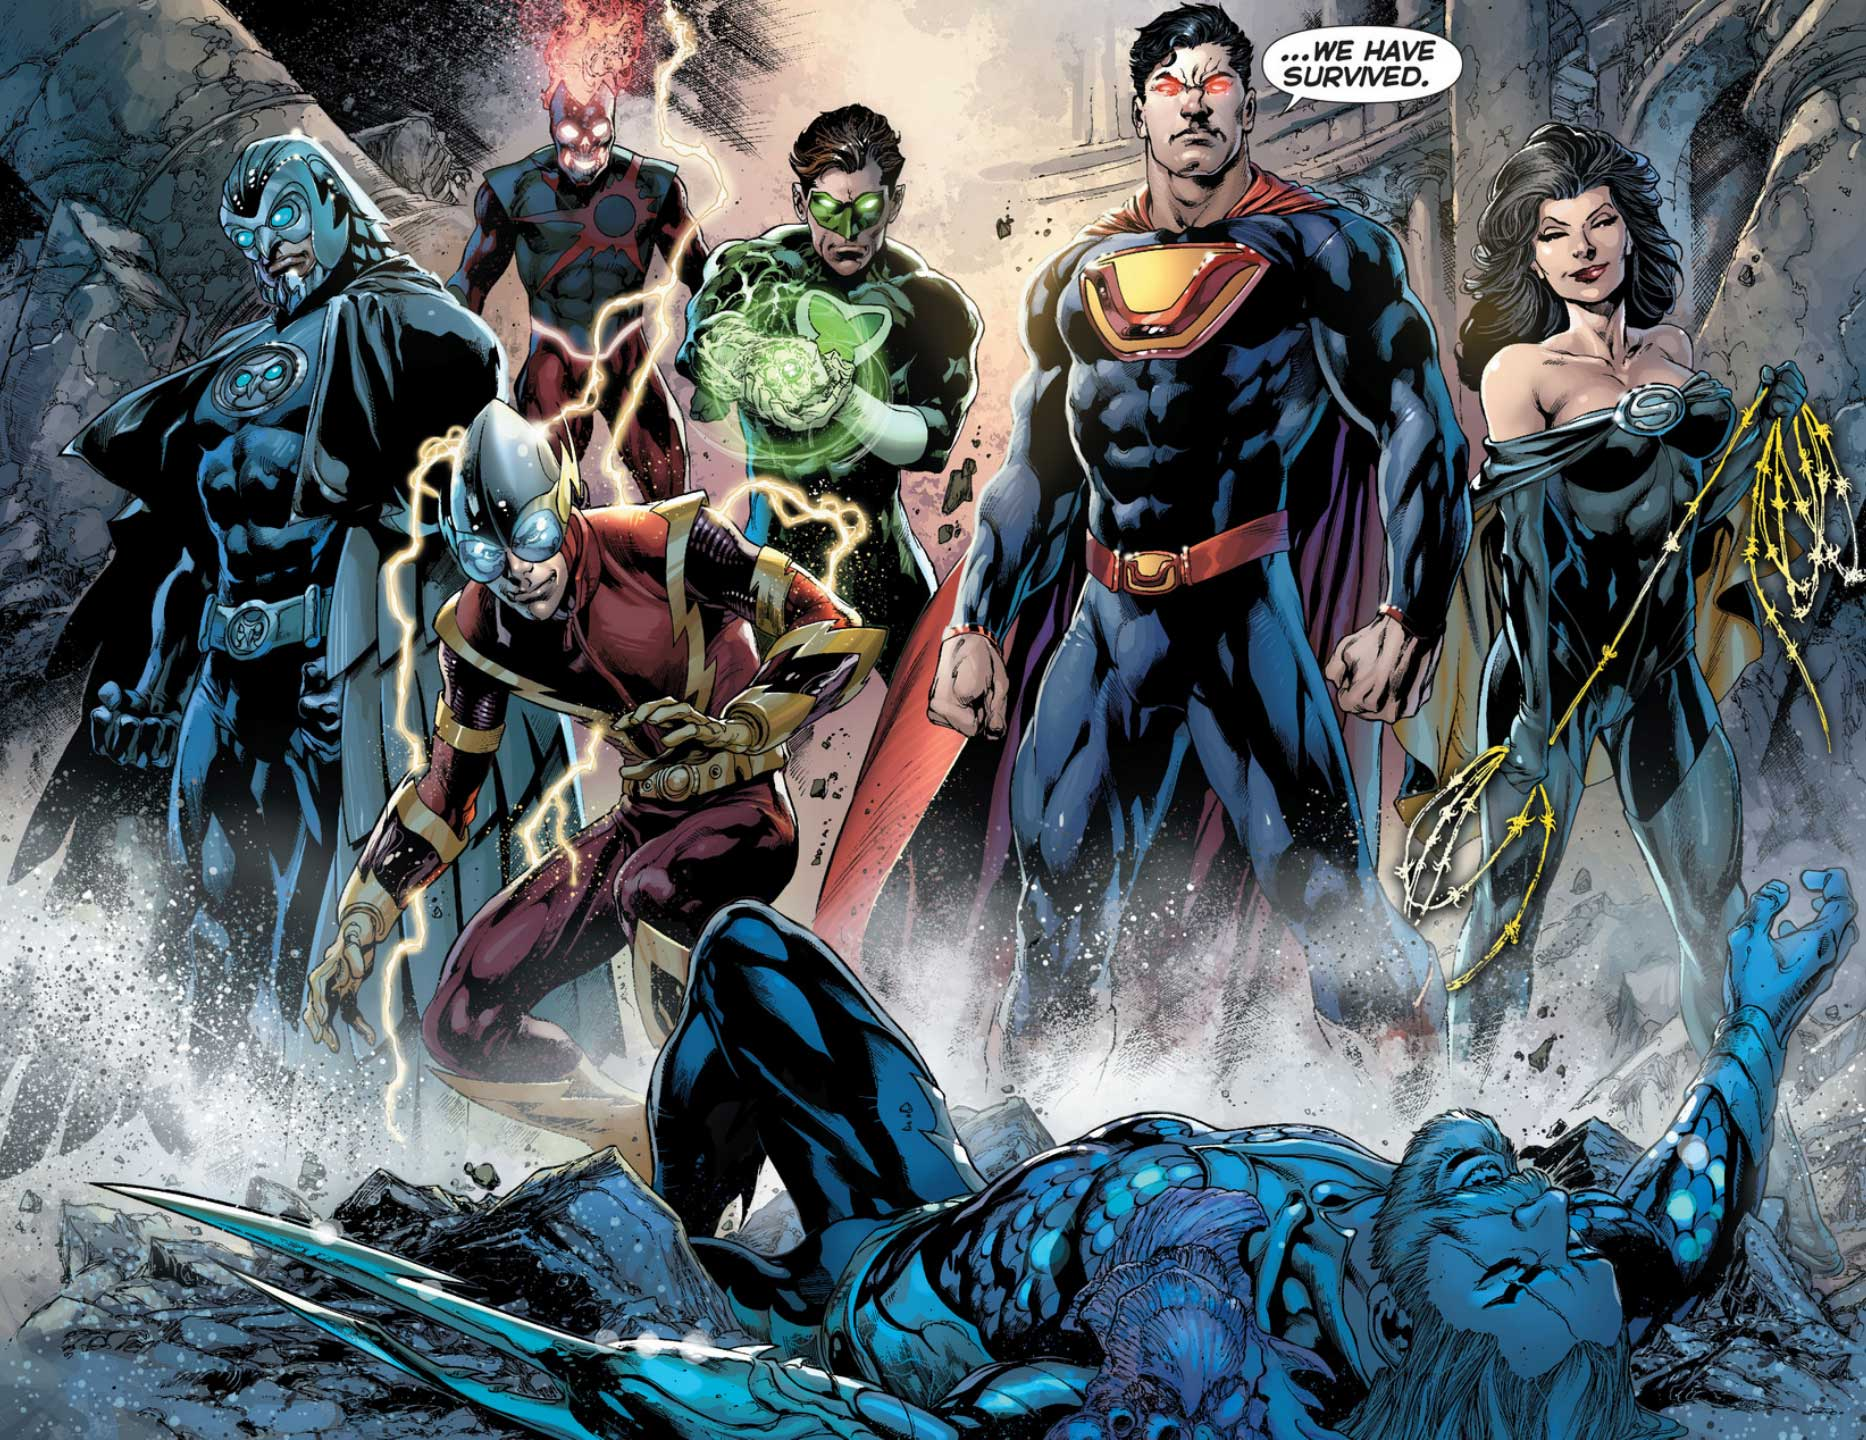 Crime Syndicate from Justice League #23 Trinity War part 6 by Ivan Reis, Joe Prado, and Rod Reis